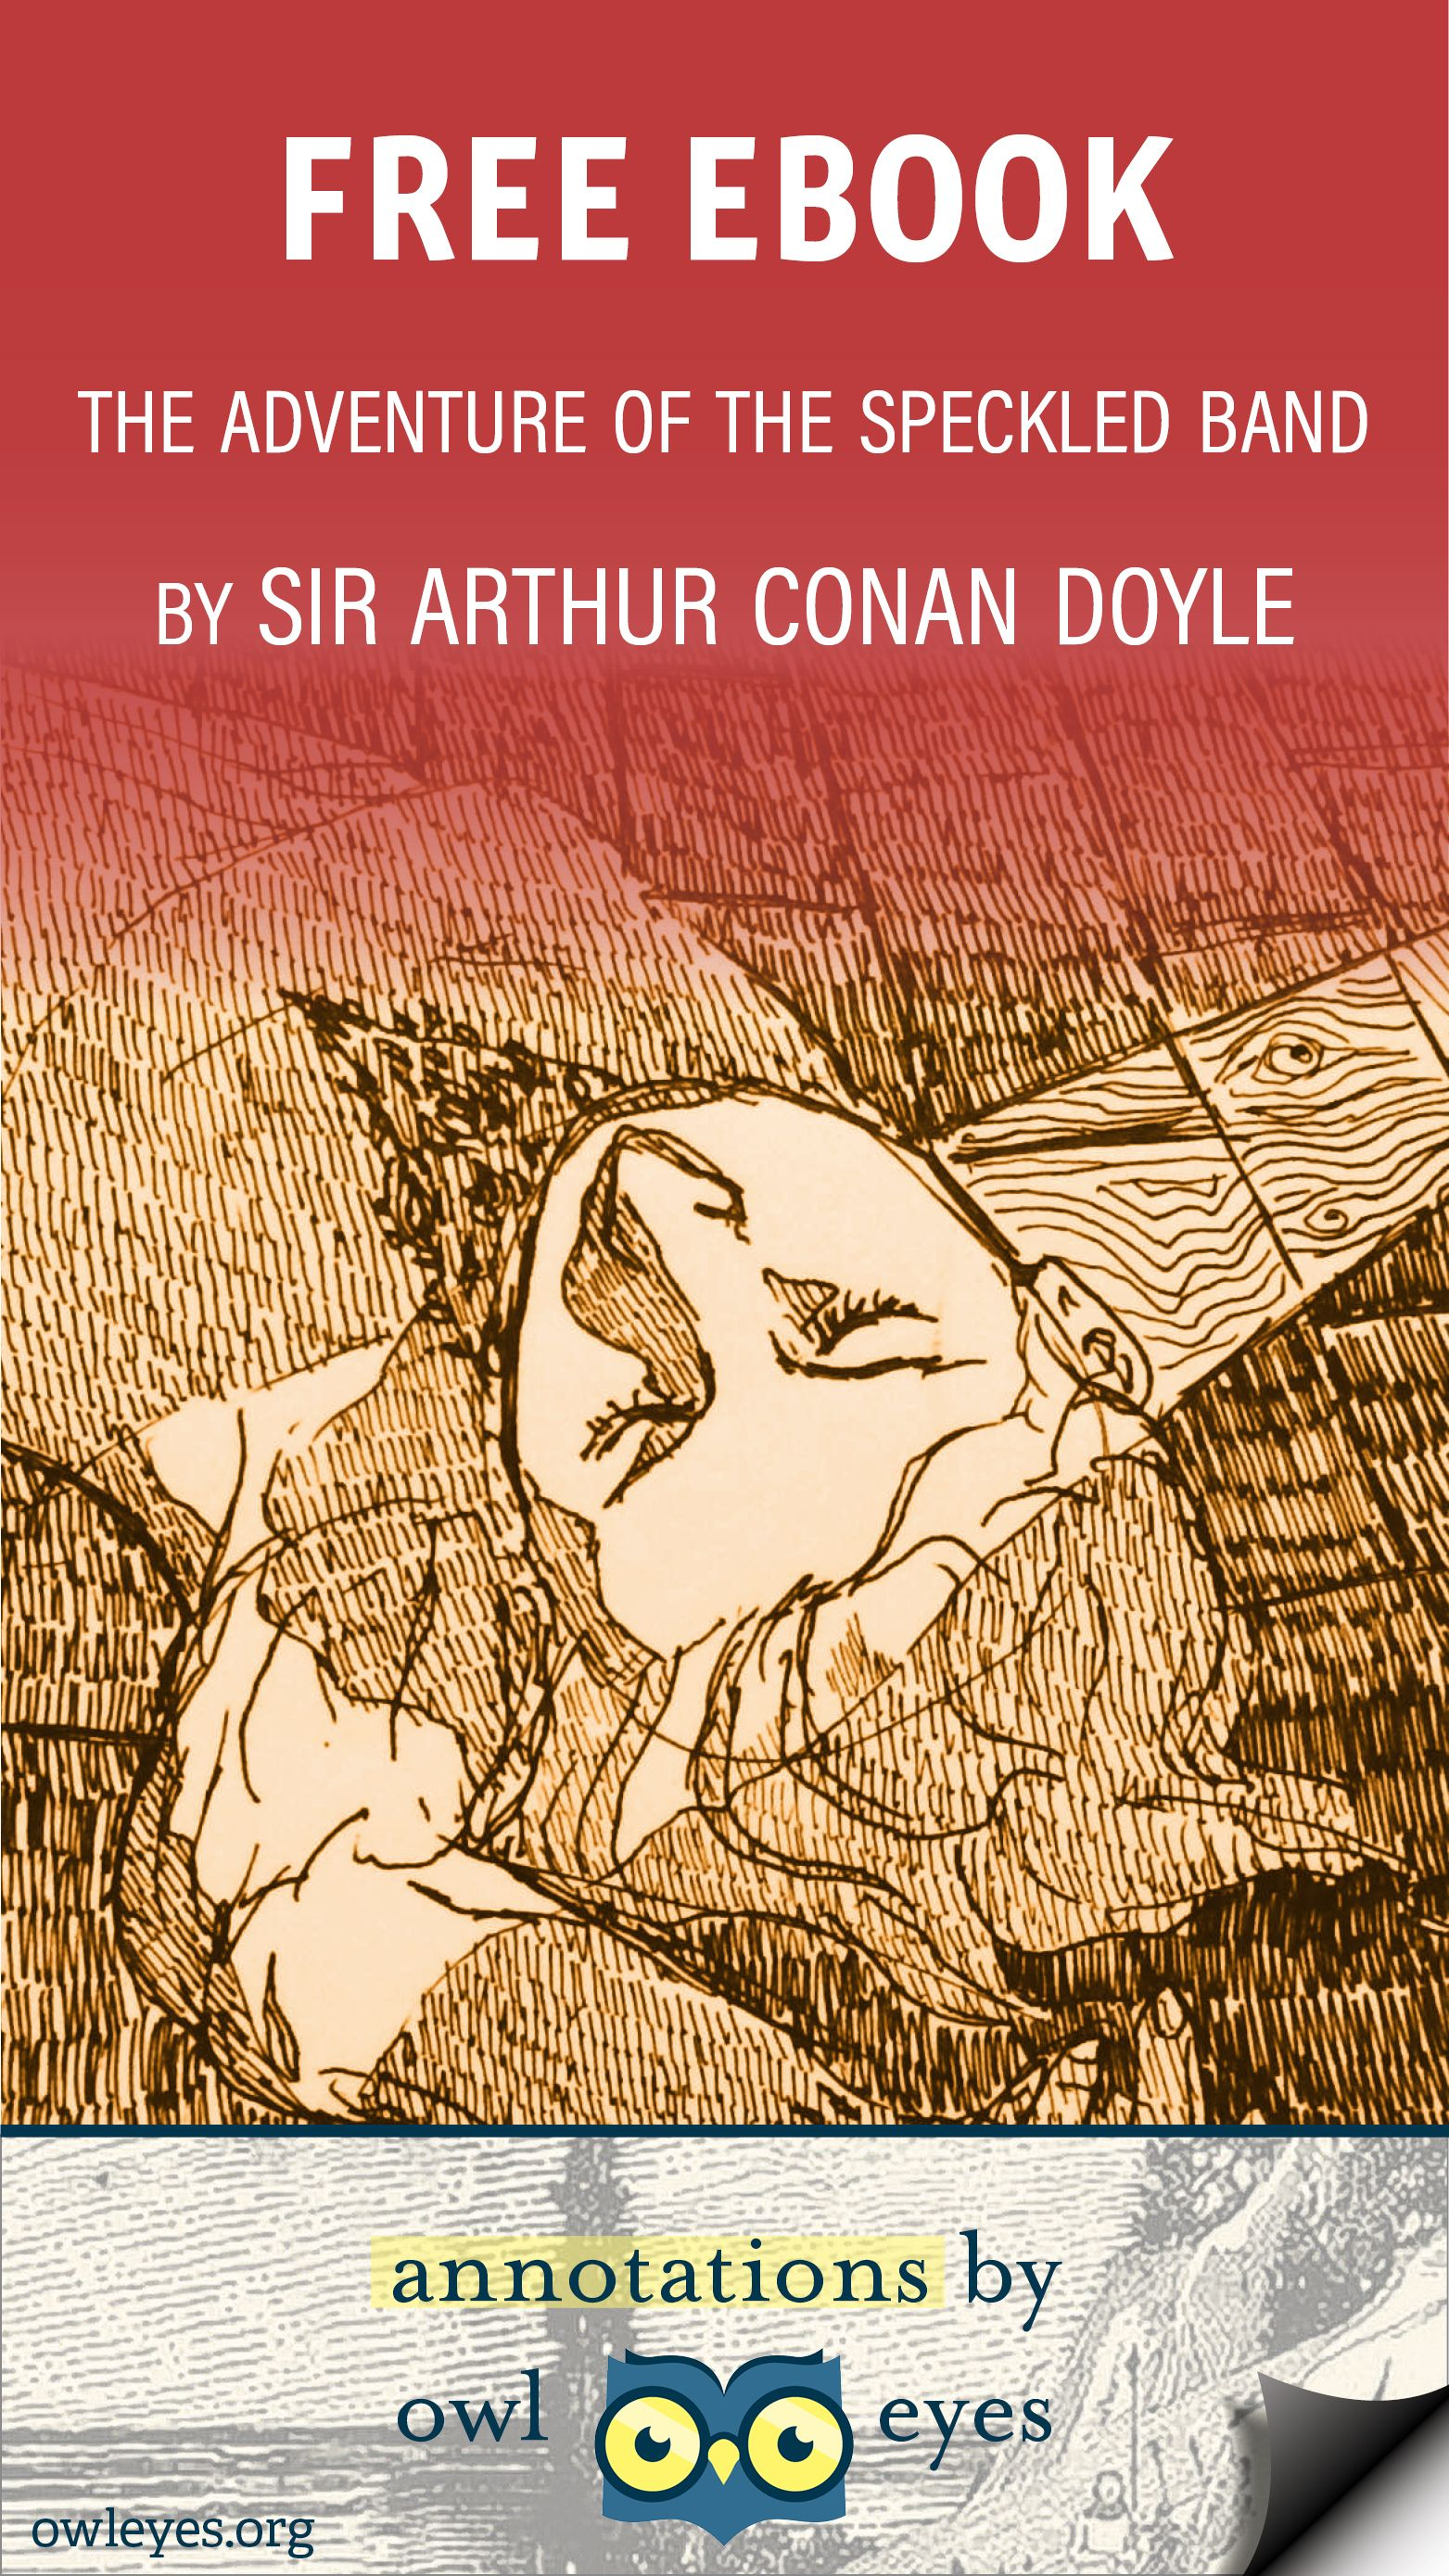 Read This Classic Sherlock Holmes Story For Free On Any